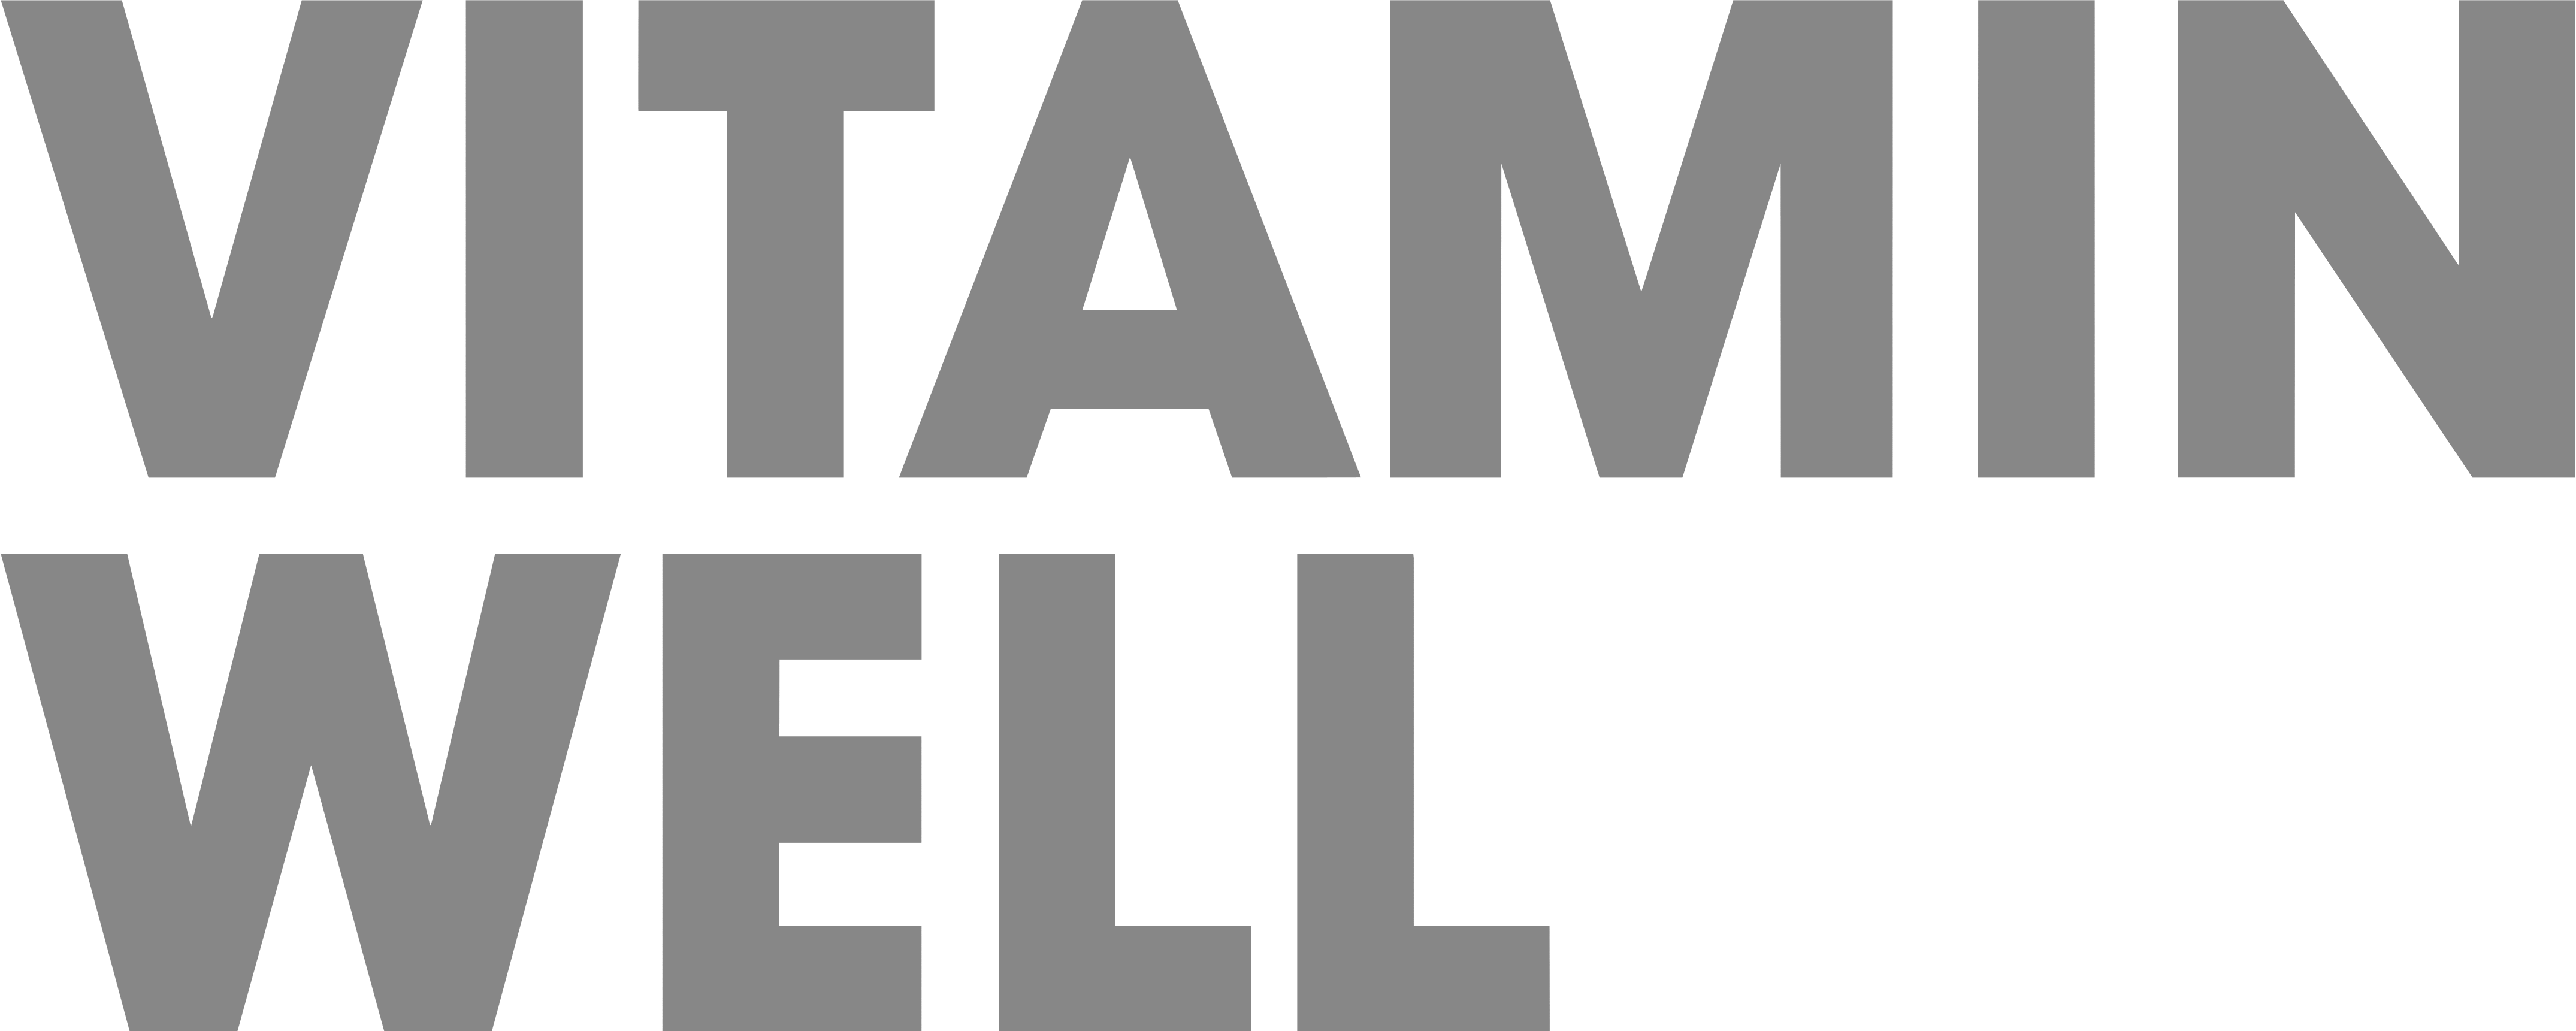 Image result for vitamin well logo